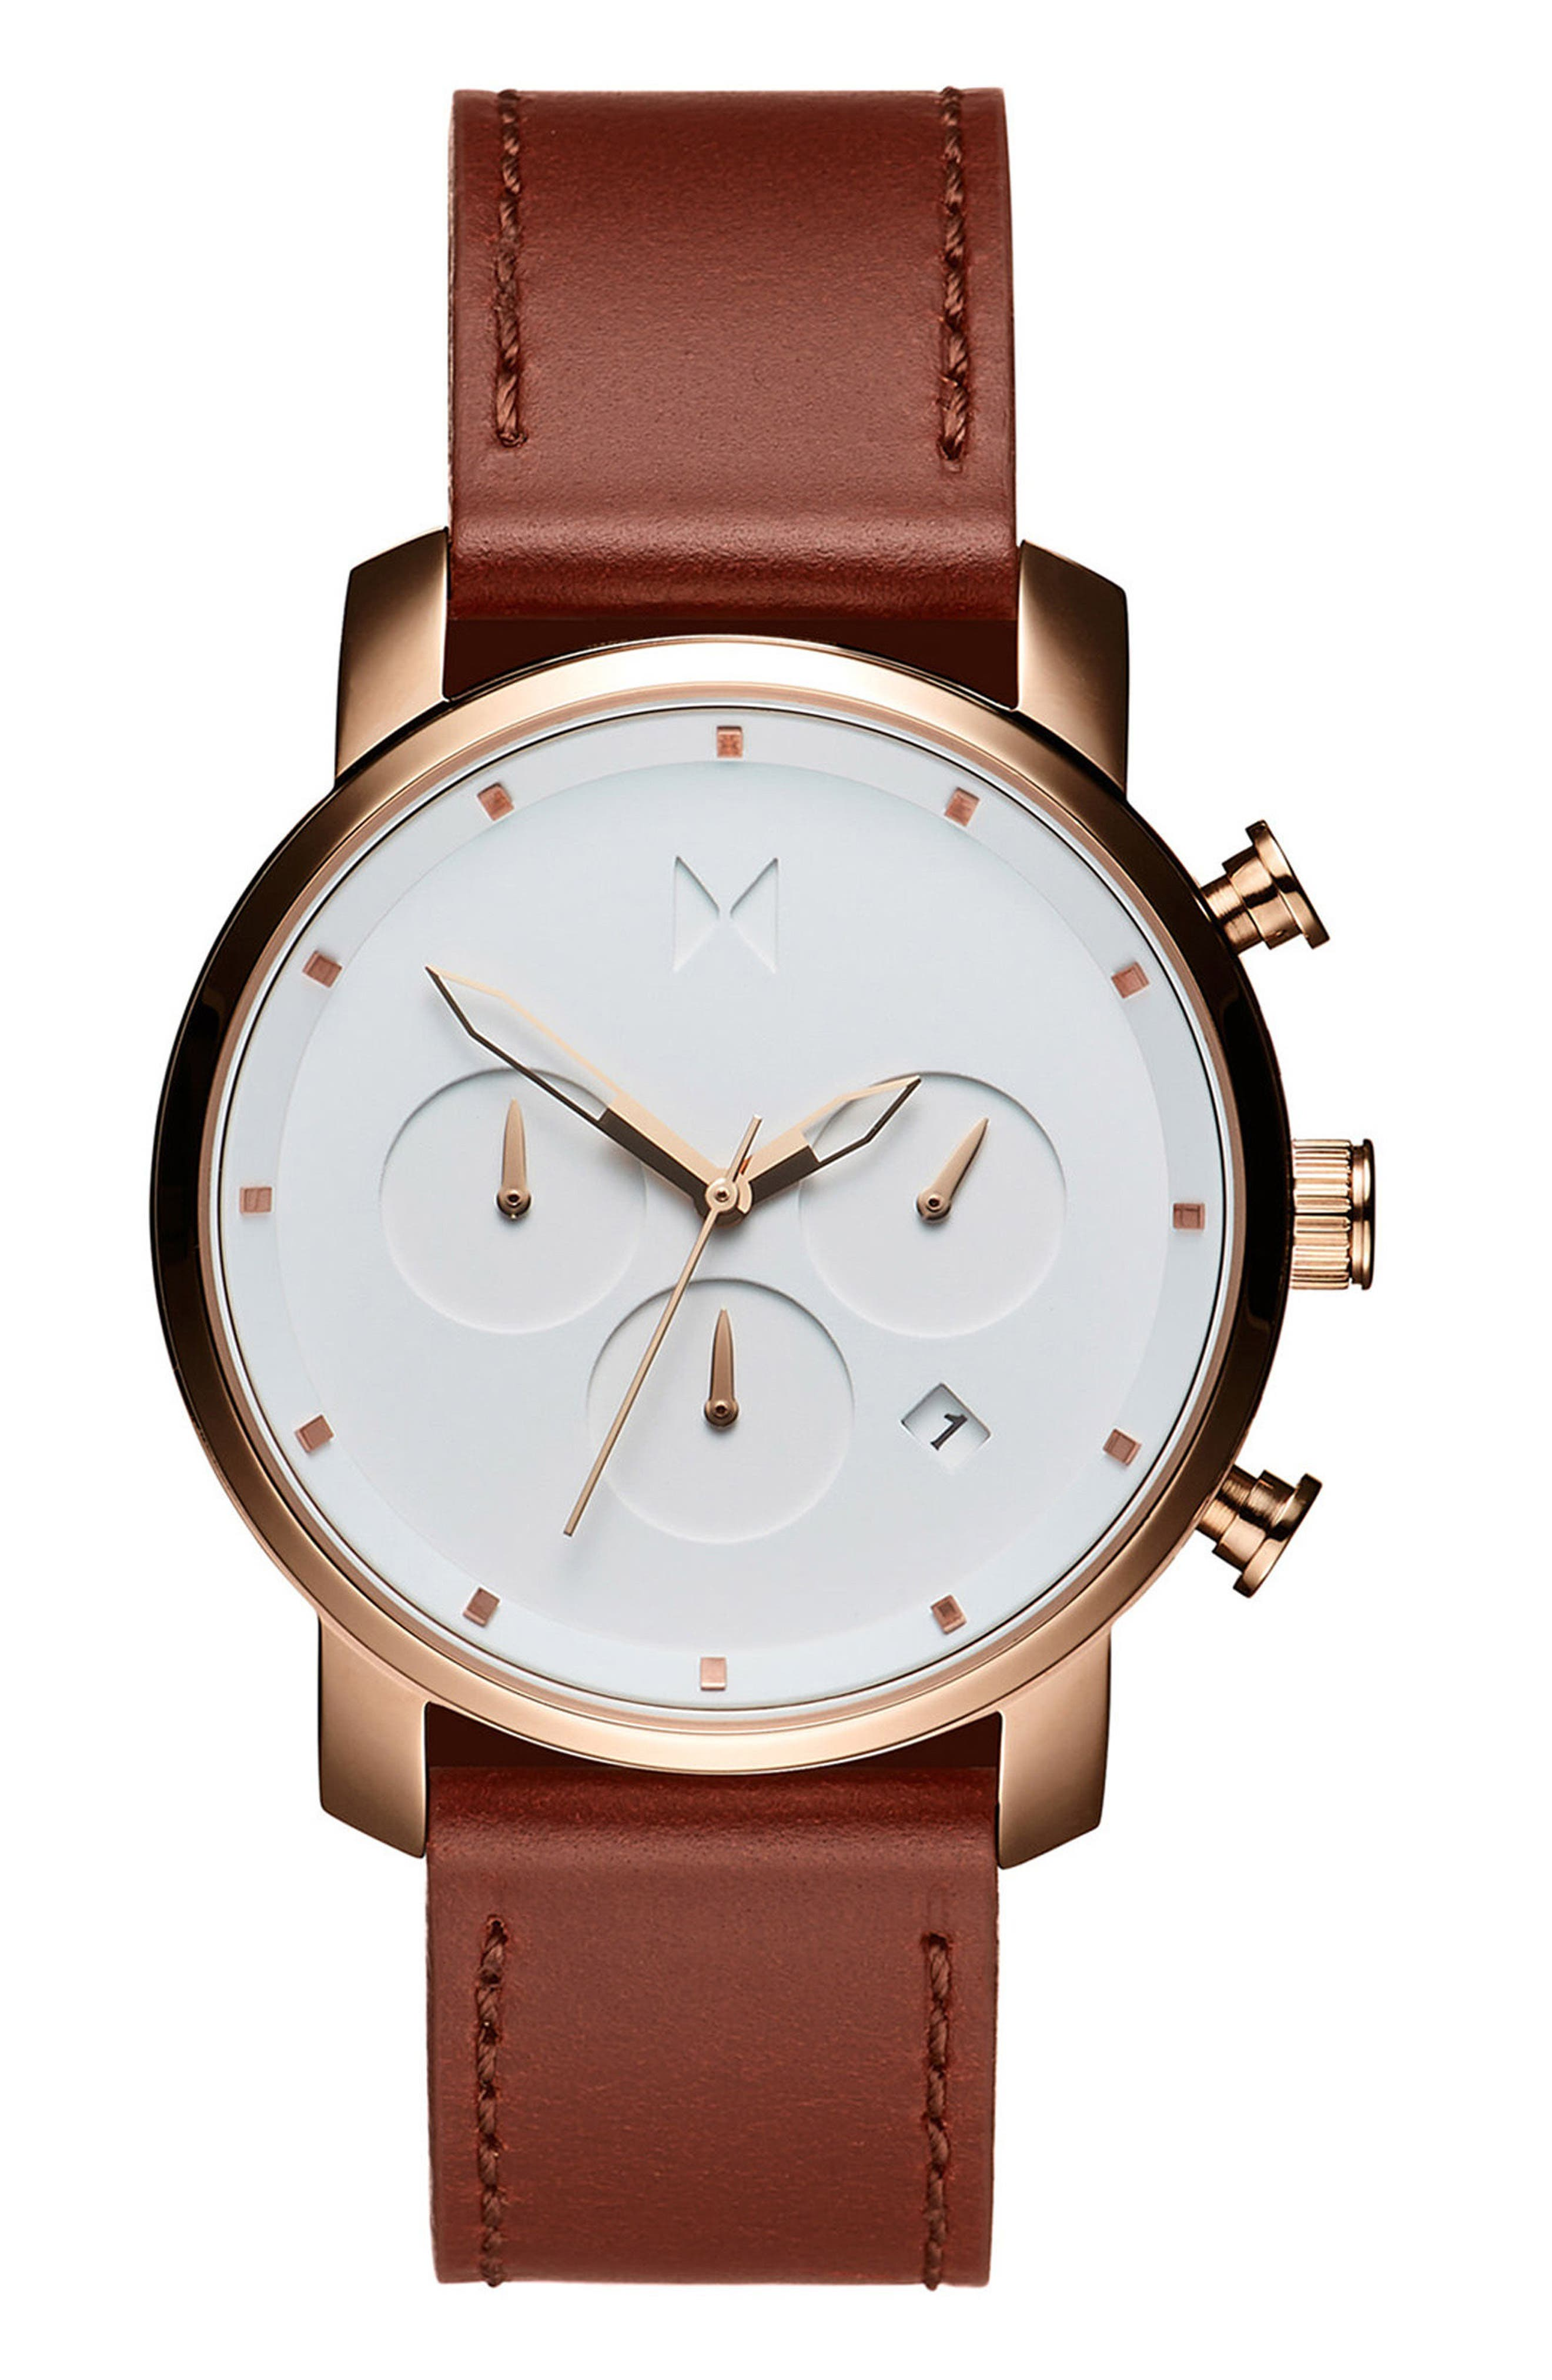 THE CHRONO CHRONOGRAPH LEATHER STRAP WATCH, 40MM